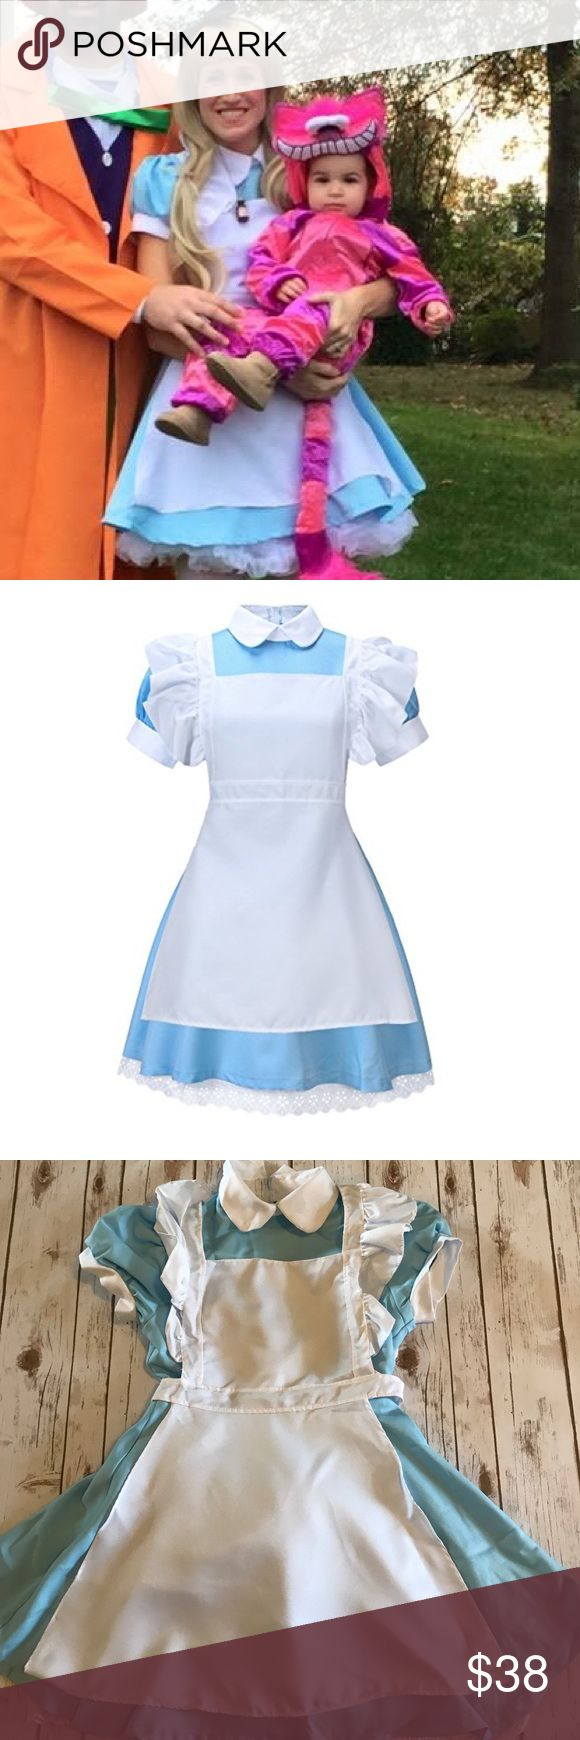 "Adult Alice in Wonderland Costume with Accessories EUC- one small blue mark on front of dress (see pic) but is covered by apron so not noticeable. This Alice in wonderland costume bundle includes the following- Dress, white apron, blonde wig with bangs, ""Drink me"" potion bottle necklace, and black headband with bow. Total retail value spent on entire costume was $60. Smoke free home. See last pic for dress and apron measurements from webpage (I'm 5'6"" 135 lbs) . The wig is not that curly…"